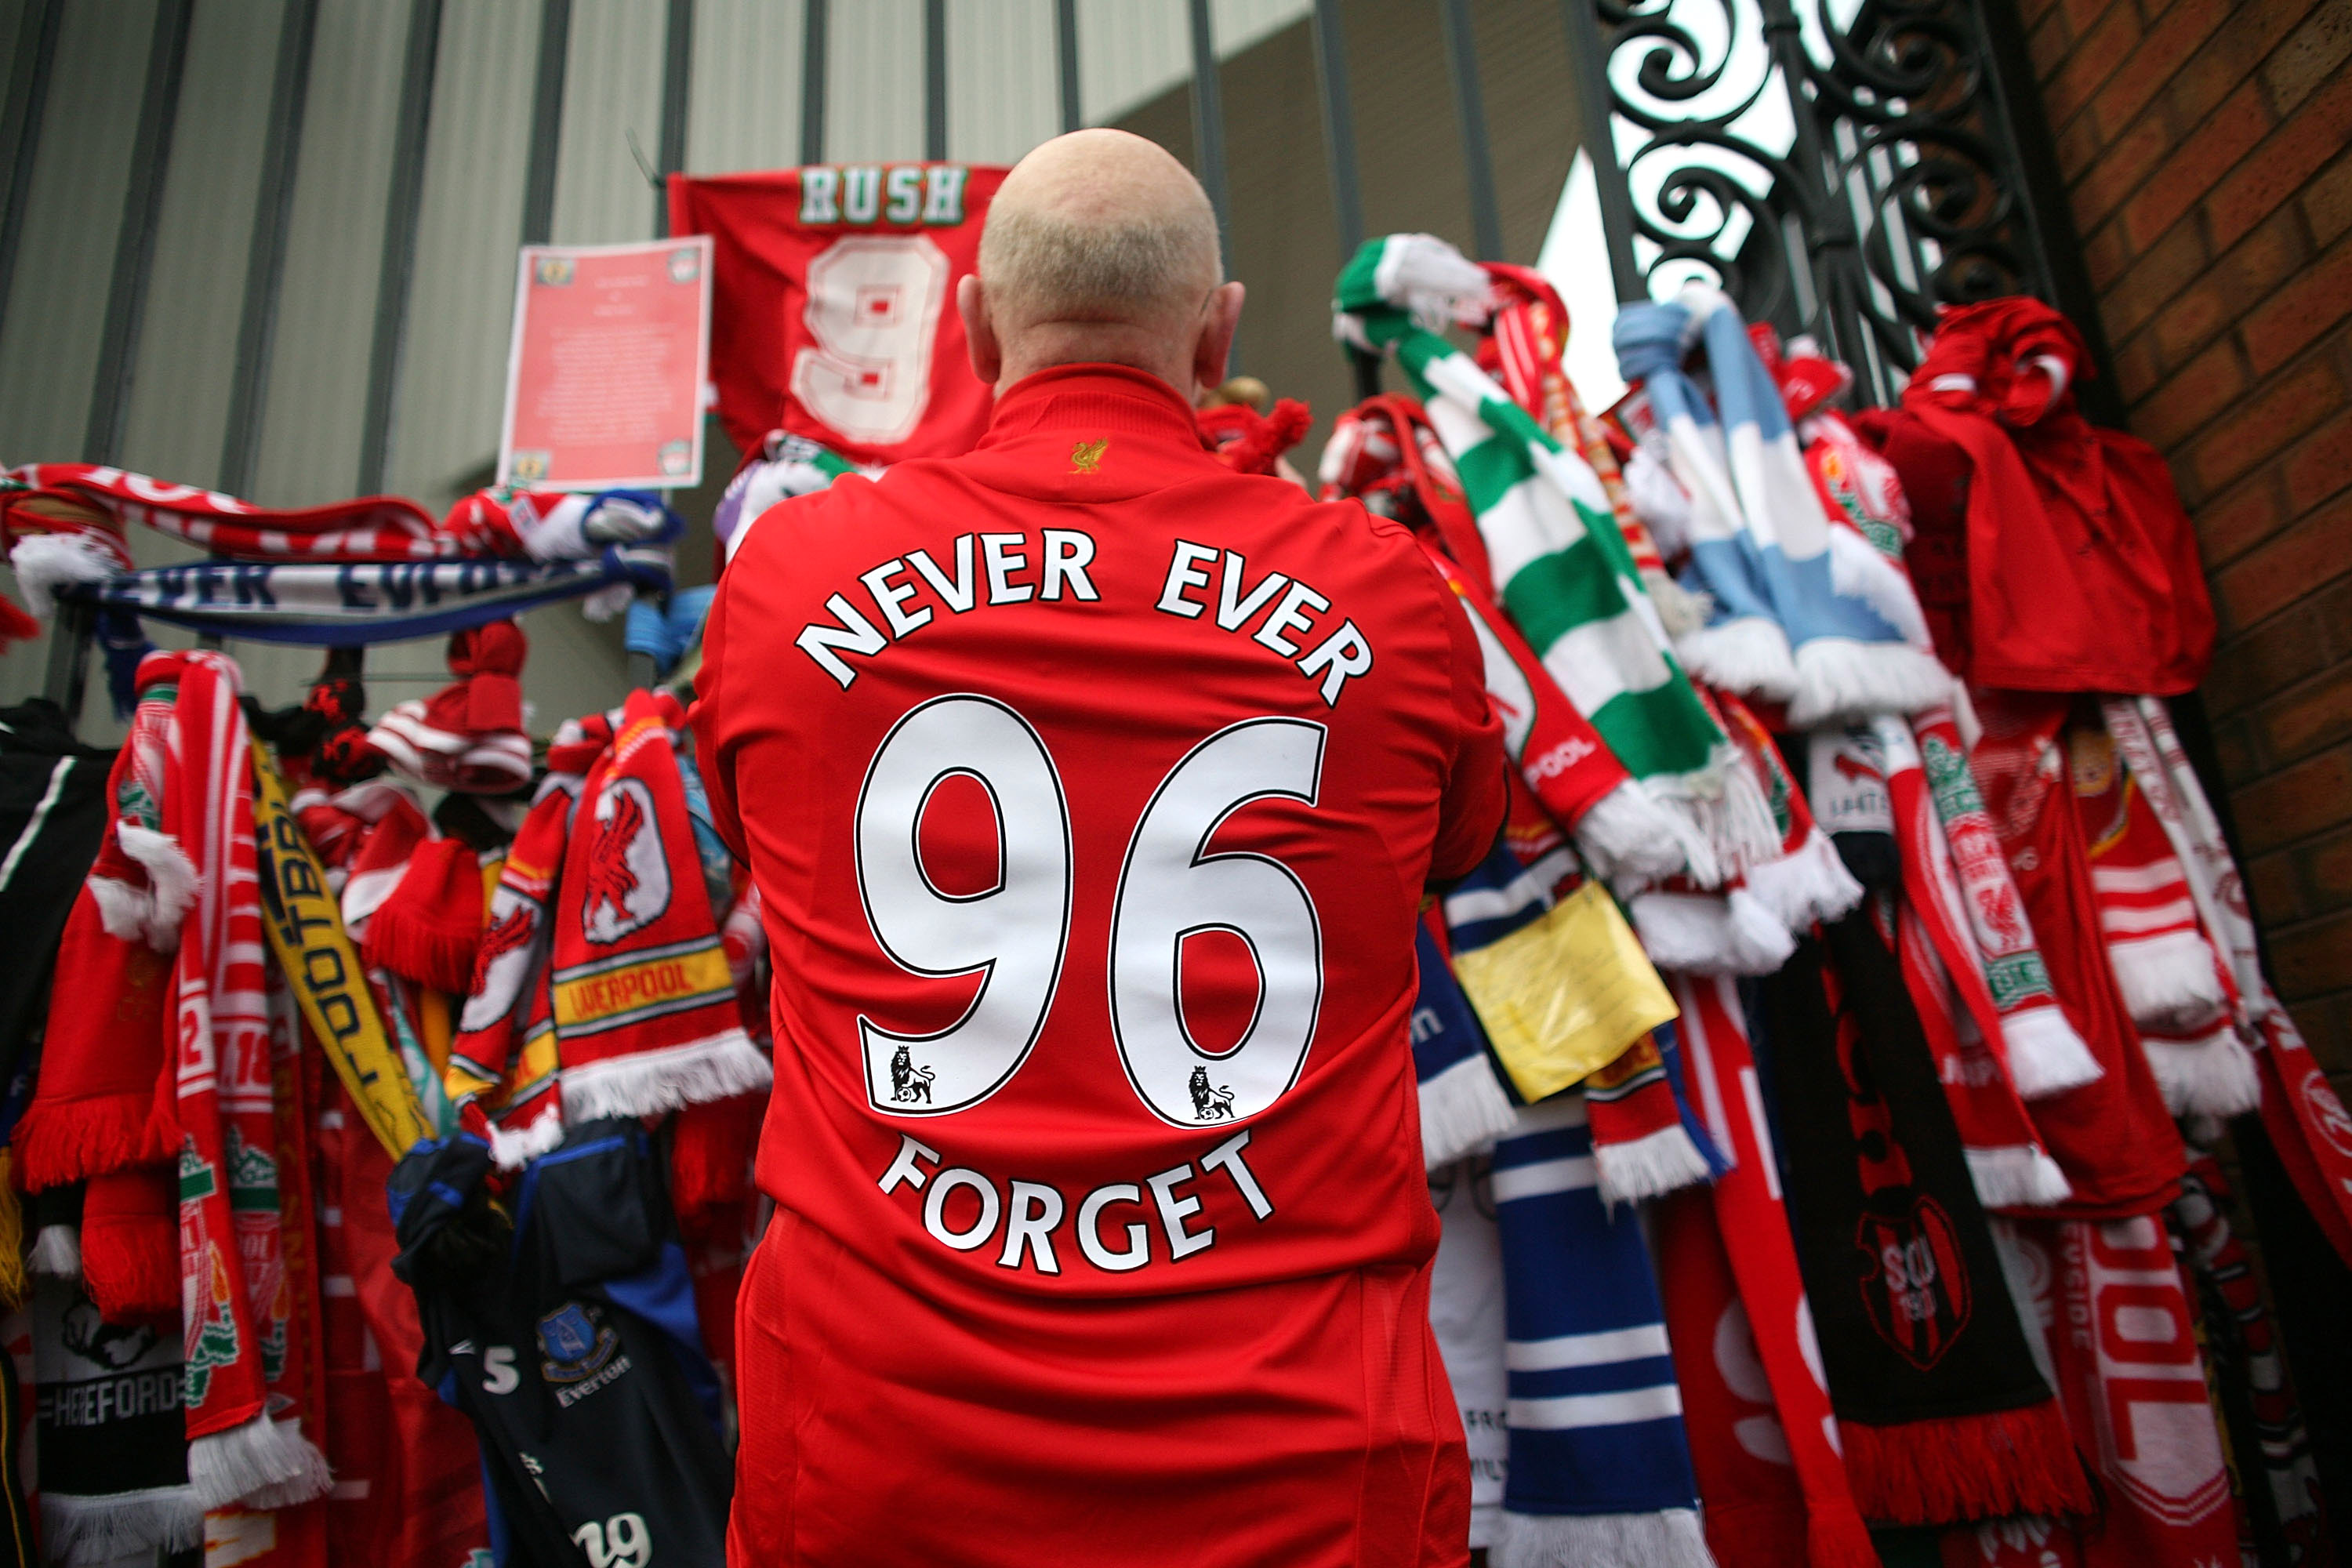 GettyImages 85987120 South Yorkshire Police Chief Suspended Over Hillsborough Response